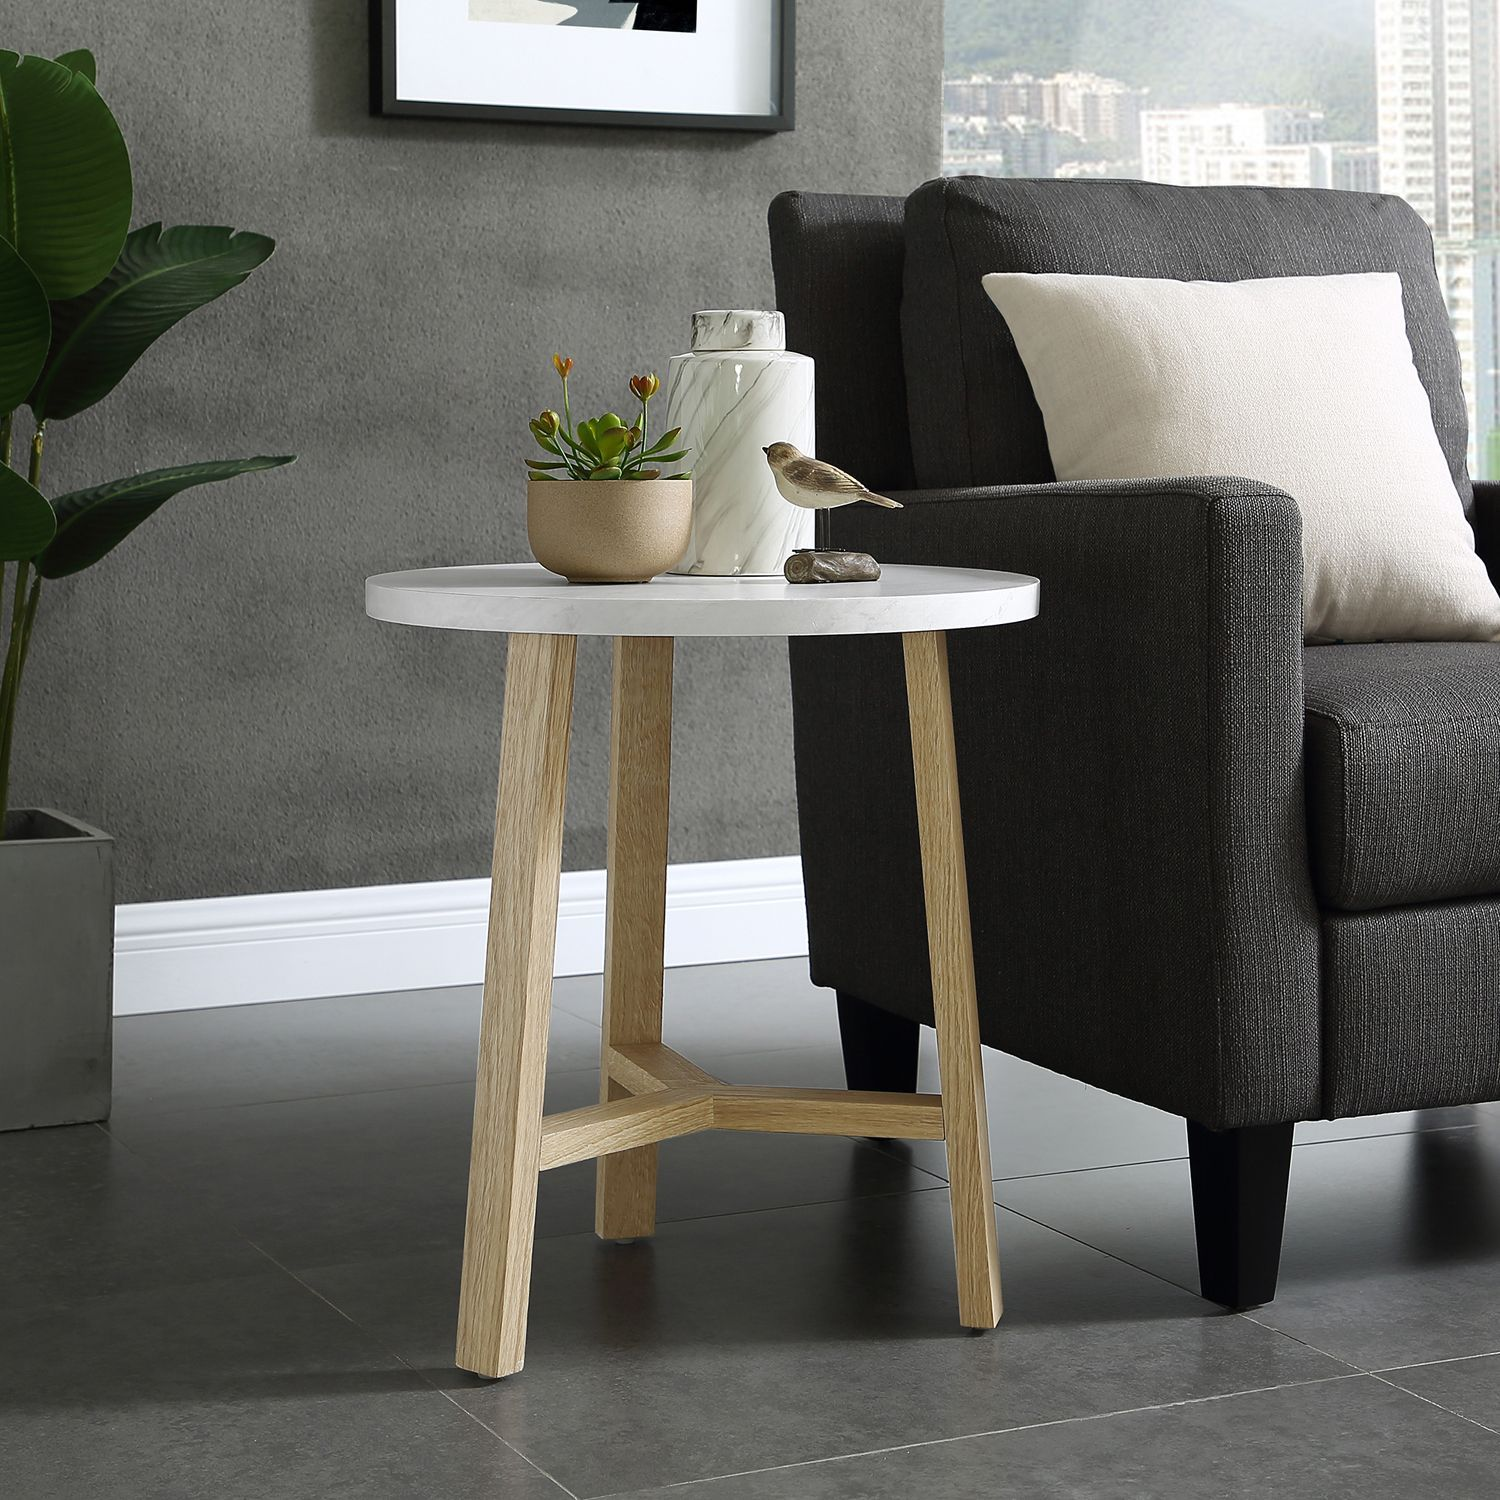 Null White Marble Side Table Living Room Side Table Table